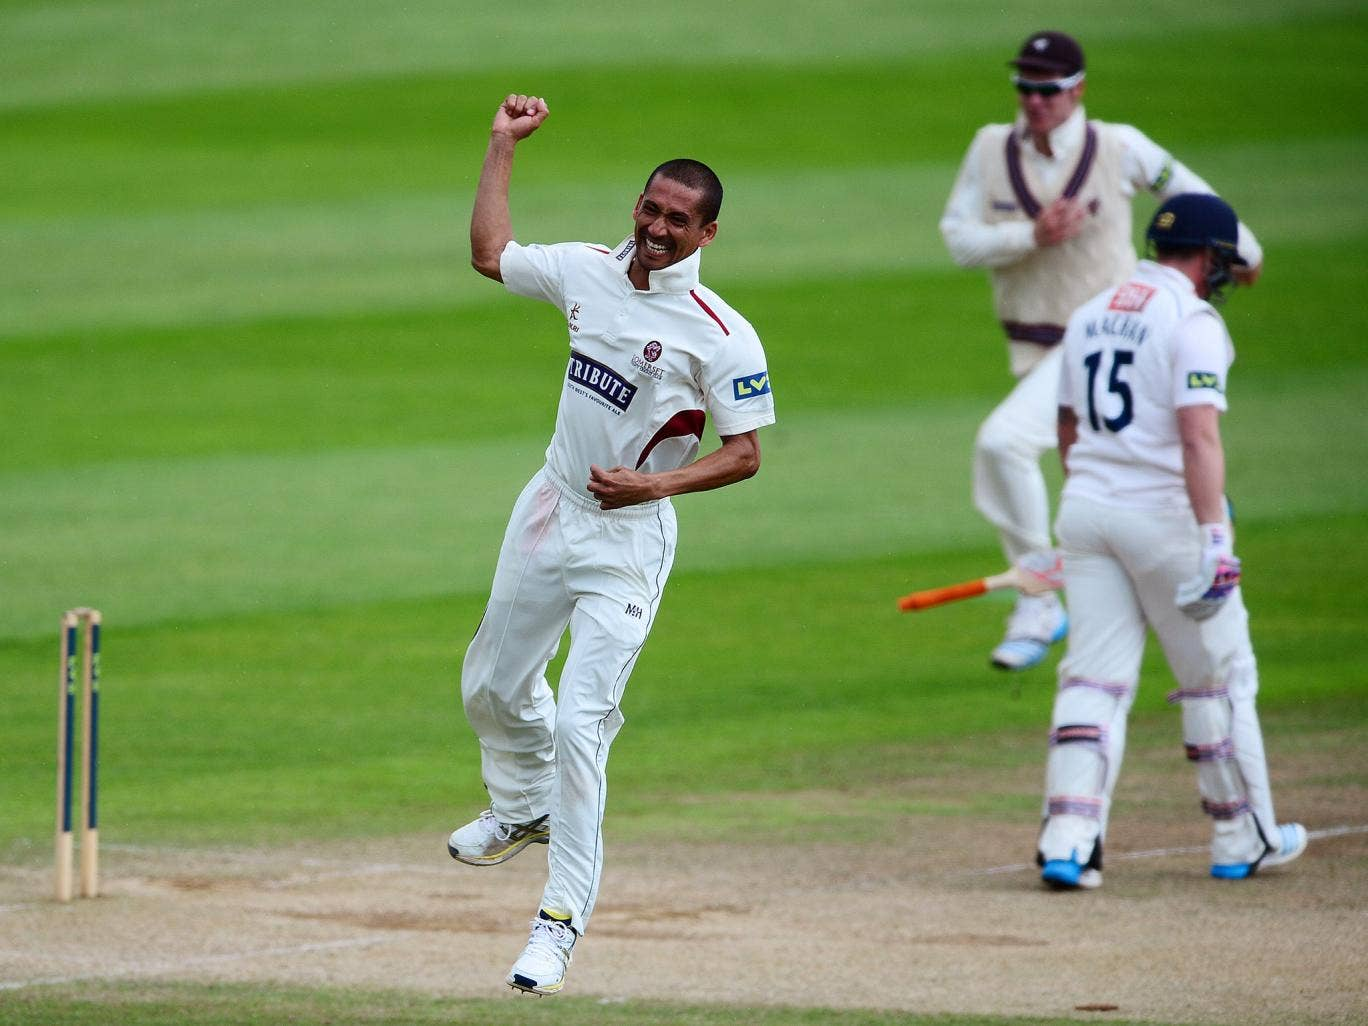 Alfonso Thomas of Somerset celebrates taking four wickets in four balls after dismissing Matt Machan of Sussex during day three of the LV County Championship